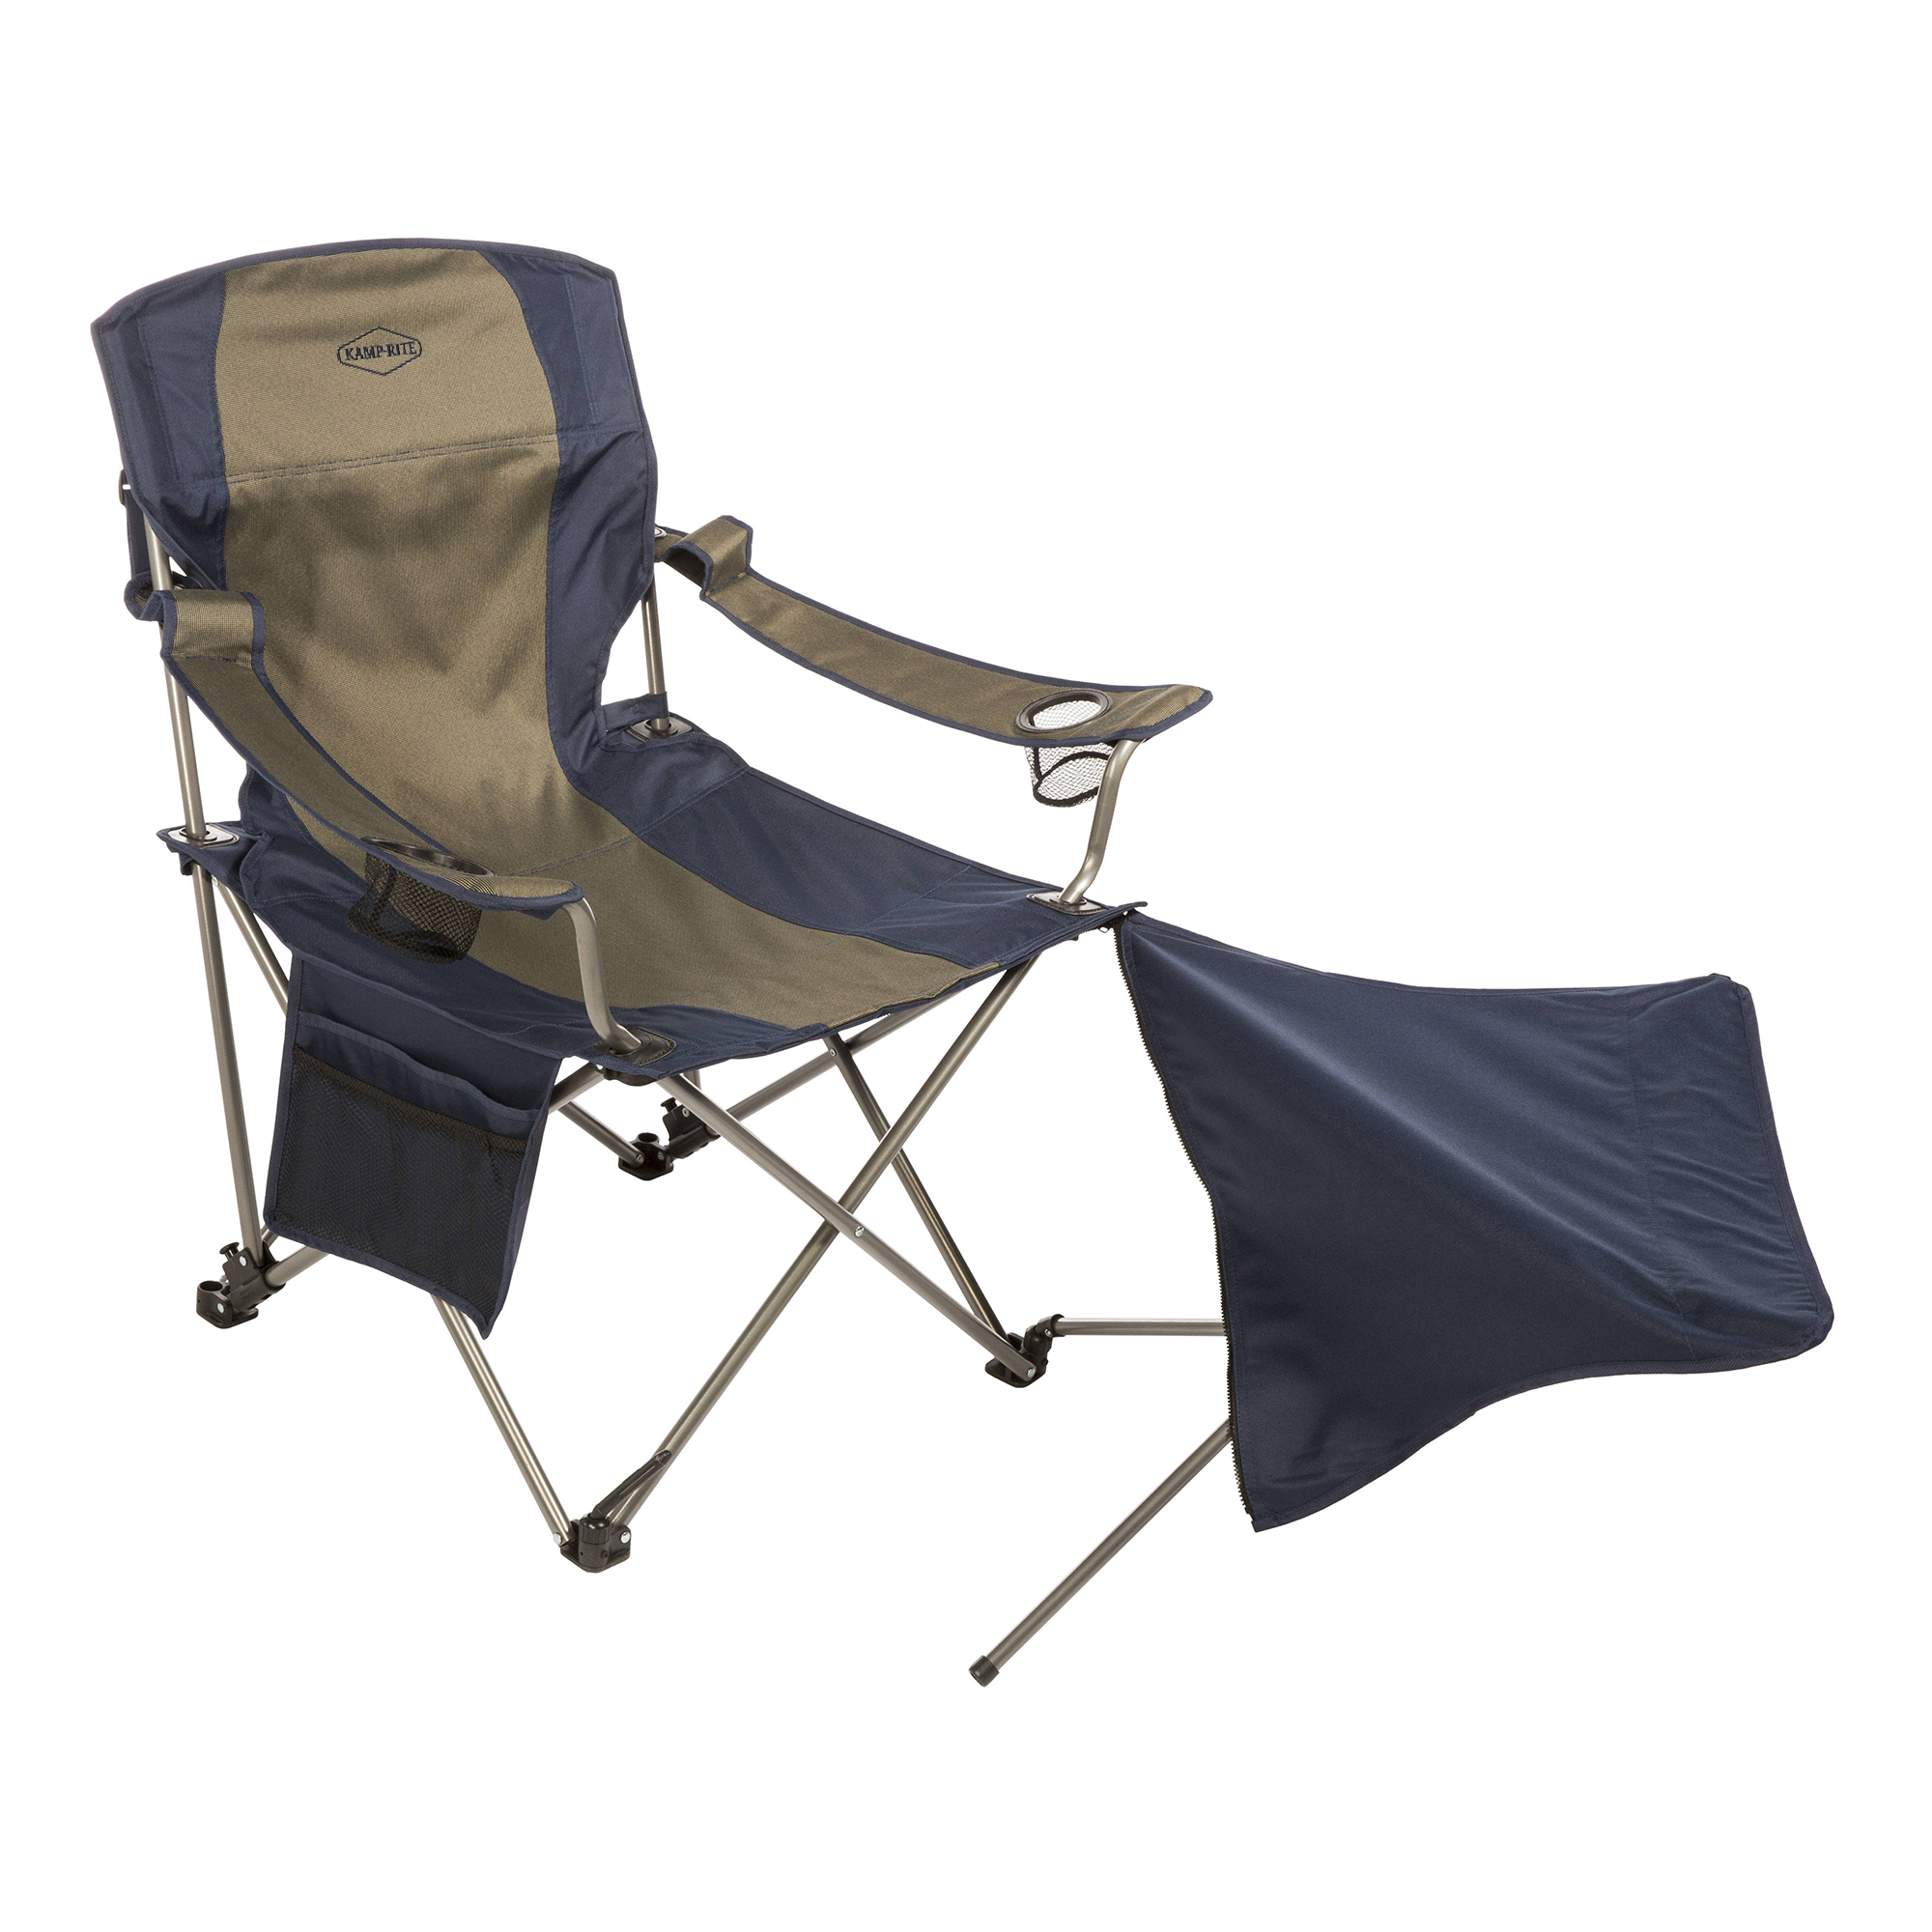 Kamp Rite Outdoor Folding Tailgating Camping Chair With